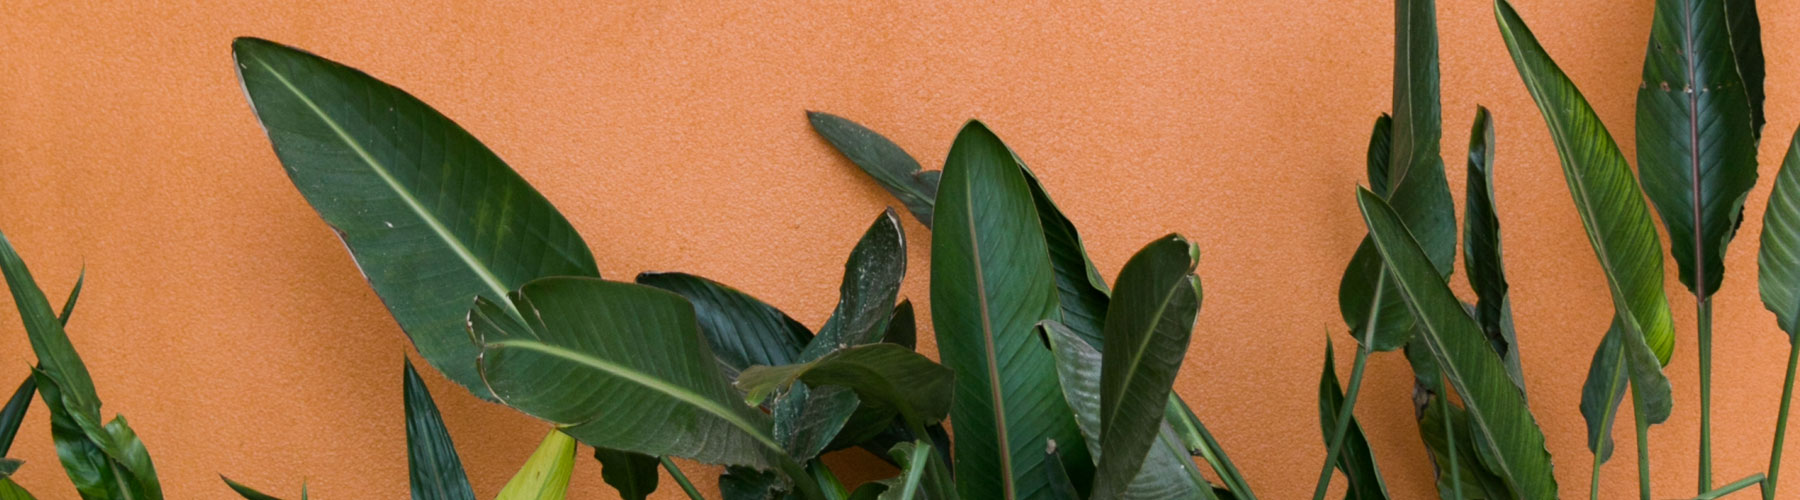 Orange background with plants in front of it.